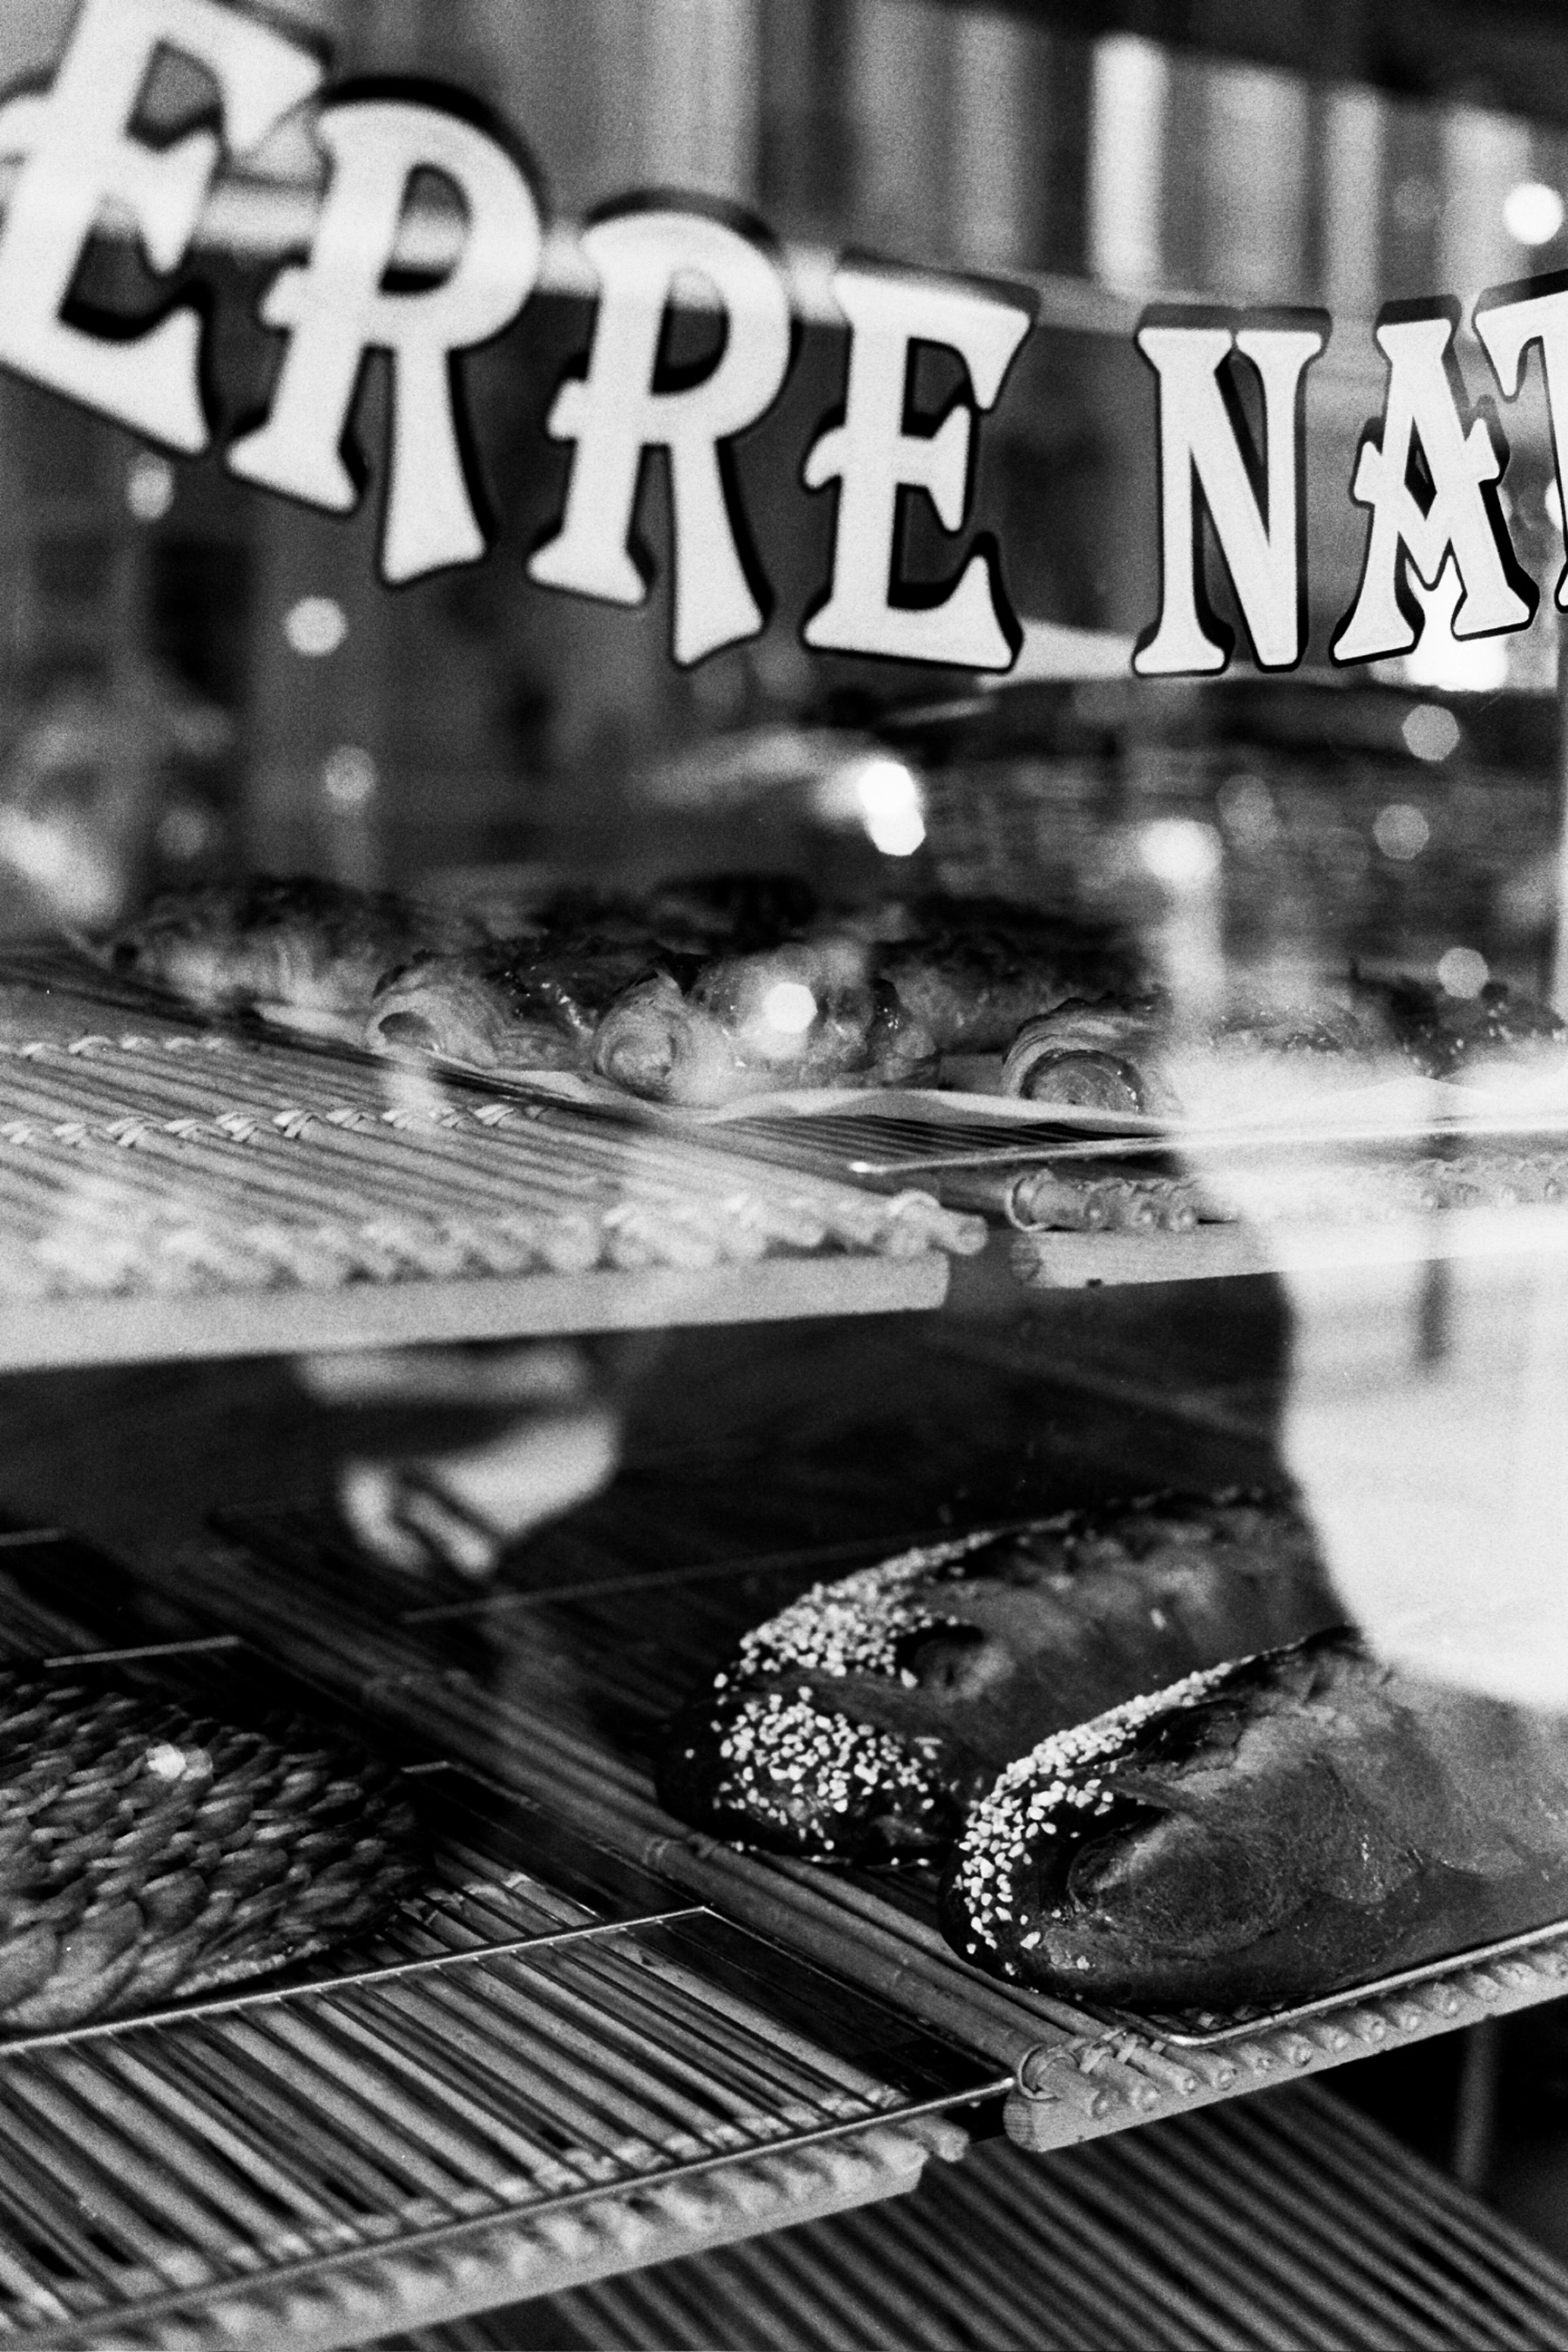 Ann Street Studio Where To Eat In Paris France A Food Photo Essay By Photographer Jamie  Beck On Kodak Trix  Black And White Film Essay Proposal Examples also Good Proposal Essay Topics  Buy Speech